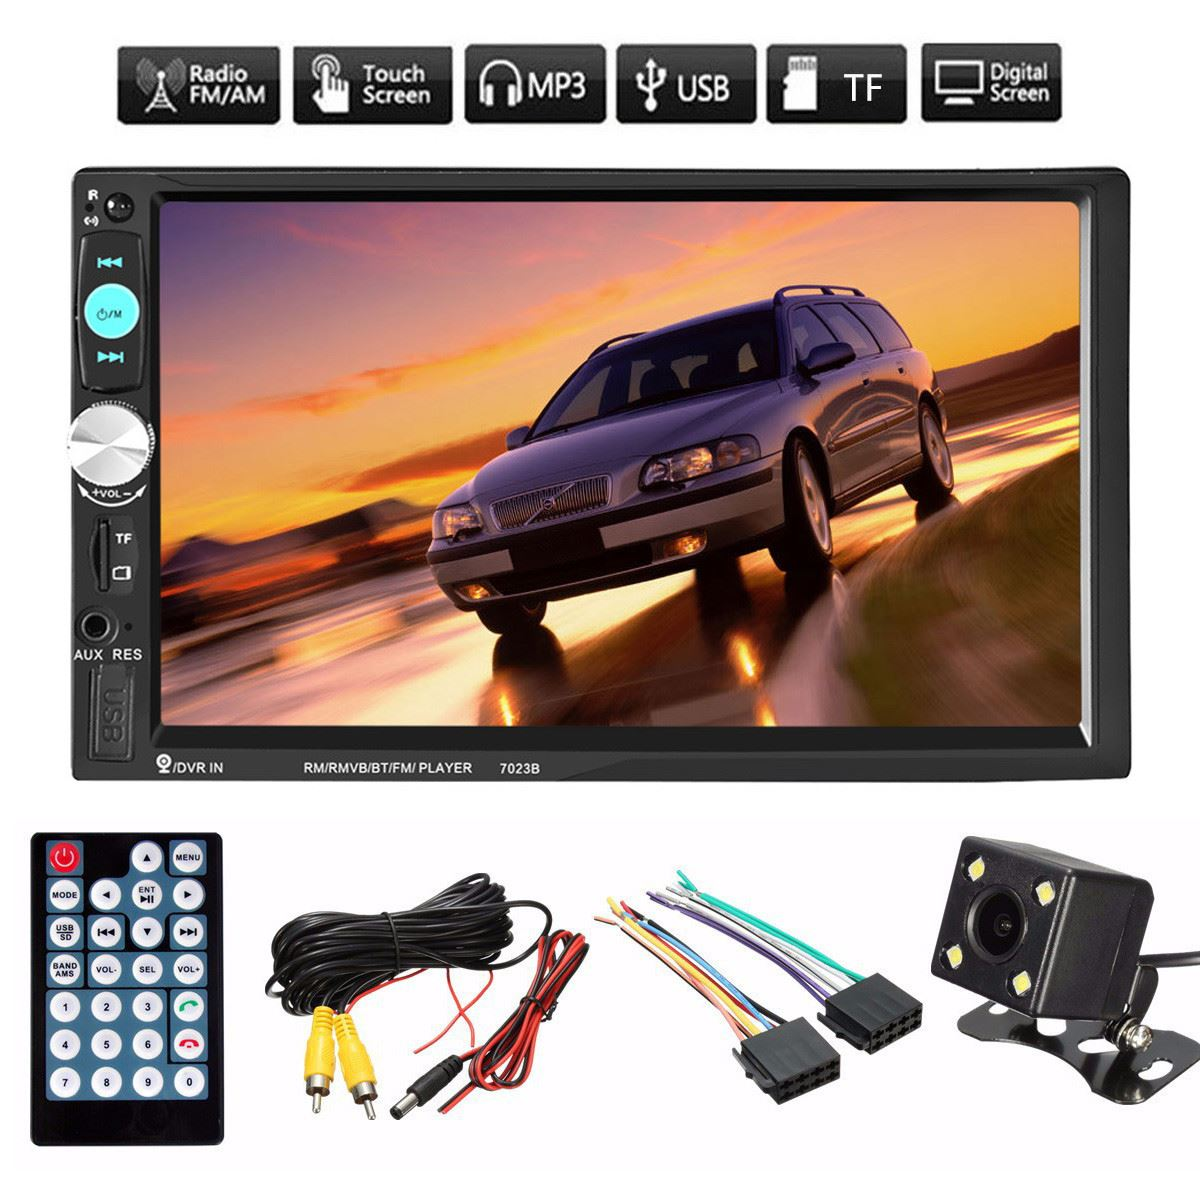 2 Din Car Radio Player 7 Inch HD Touch Screen Wireless Bluetooth Car Stereo MP5 MP3 Player Rear View Camera FM/USB/TF/AUX car radio 7 inch lcd touch screen car radio player bluetooth hands free movie rear view camera 2 din audio stereo mp5